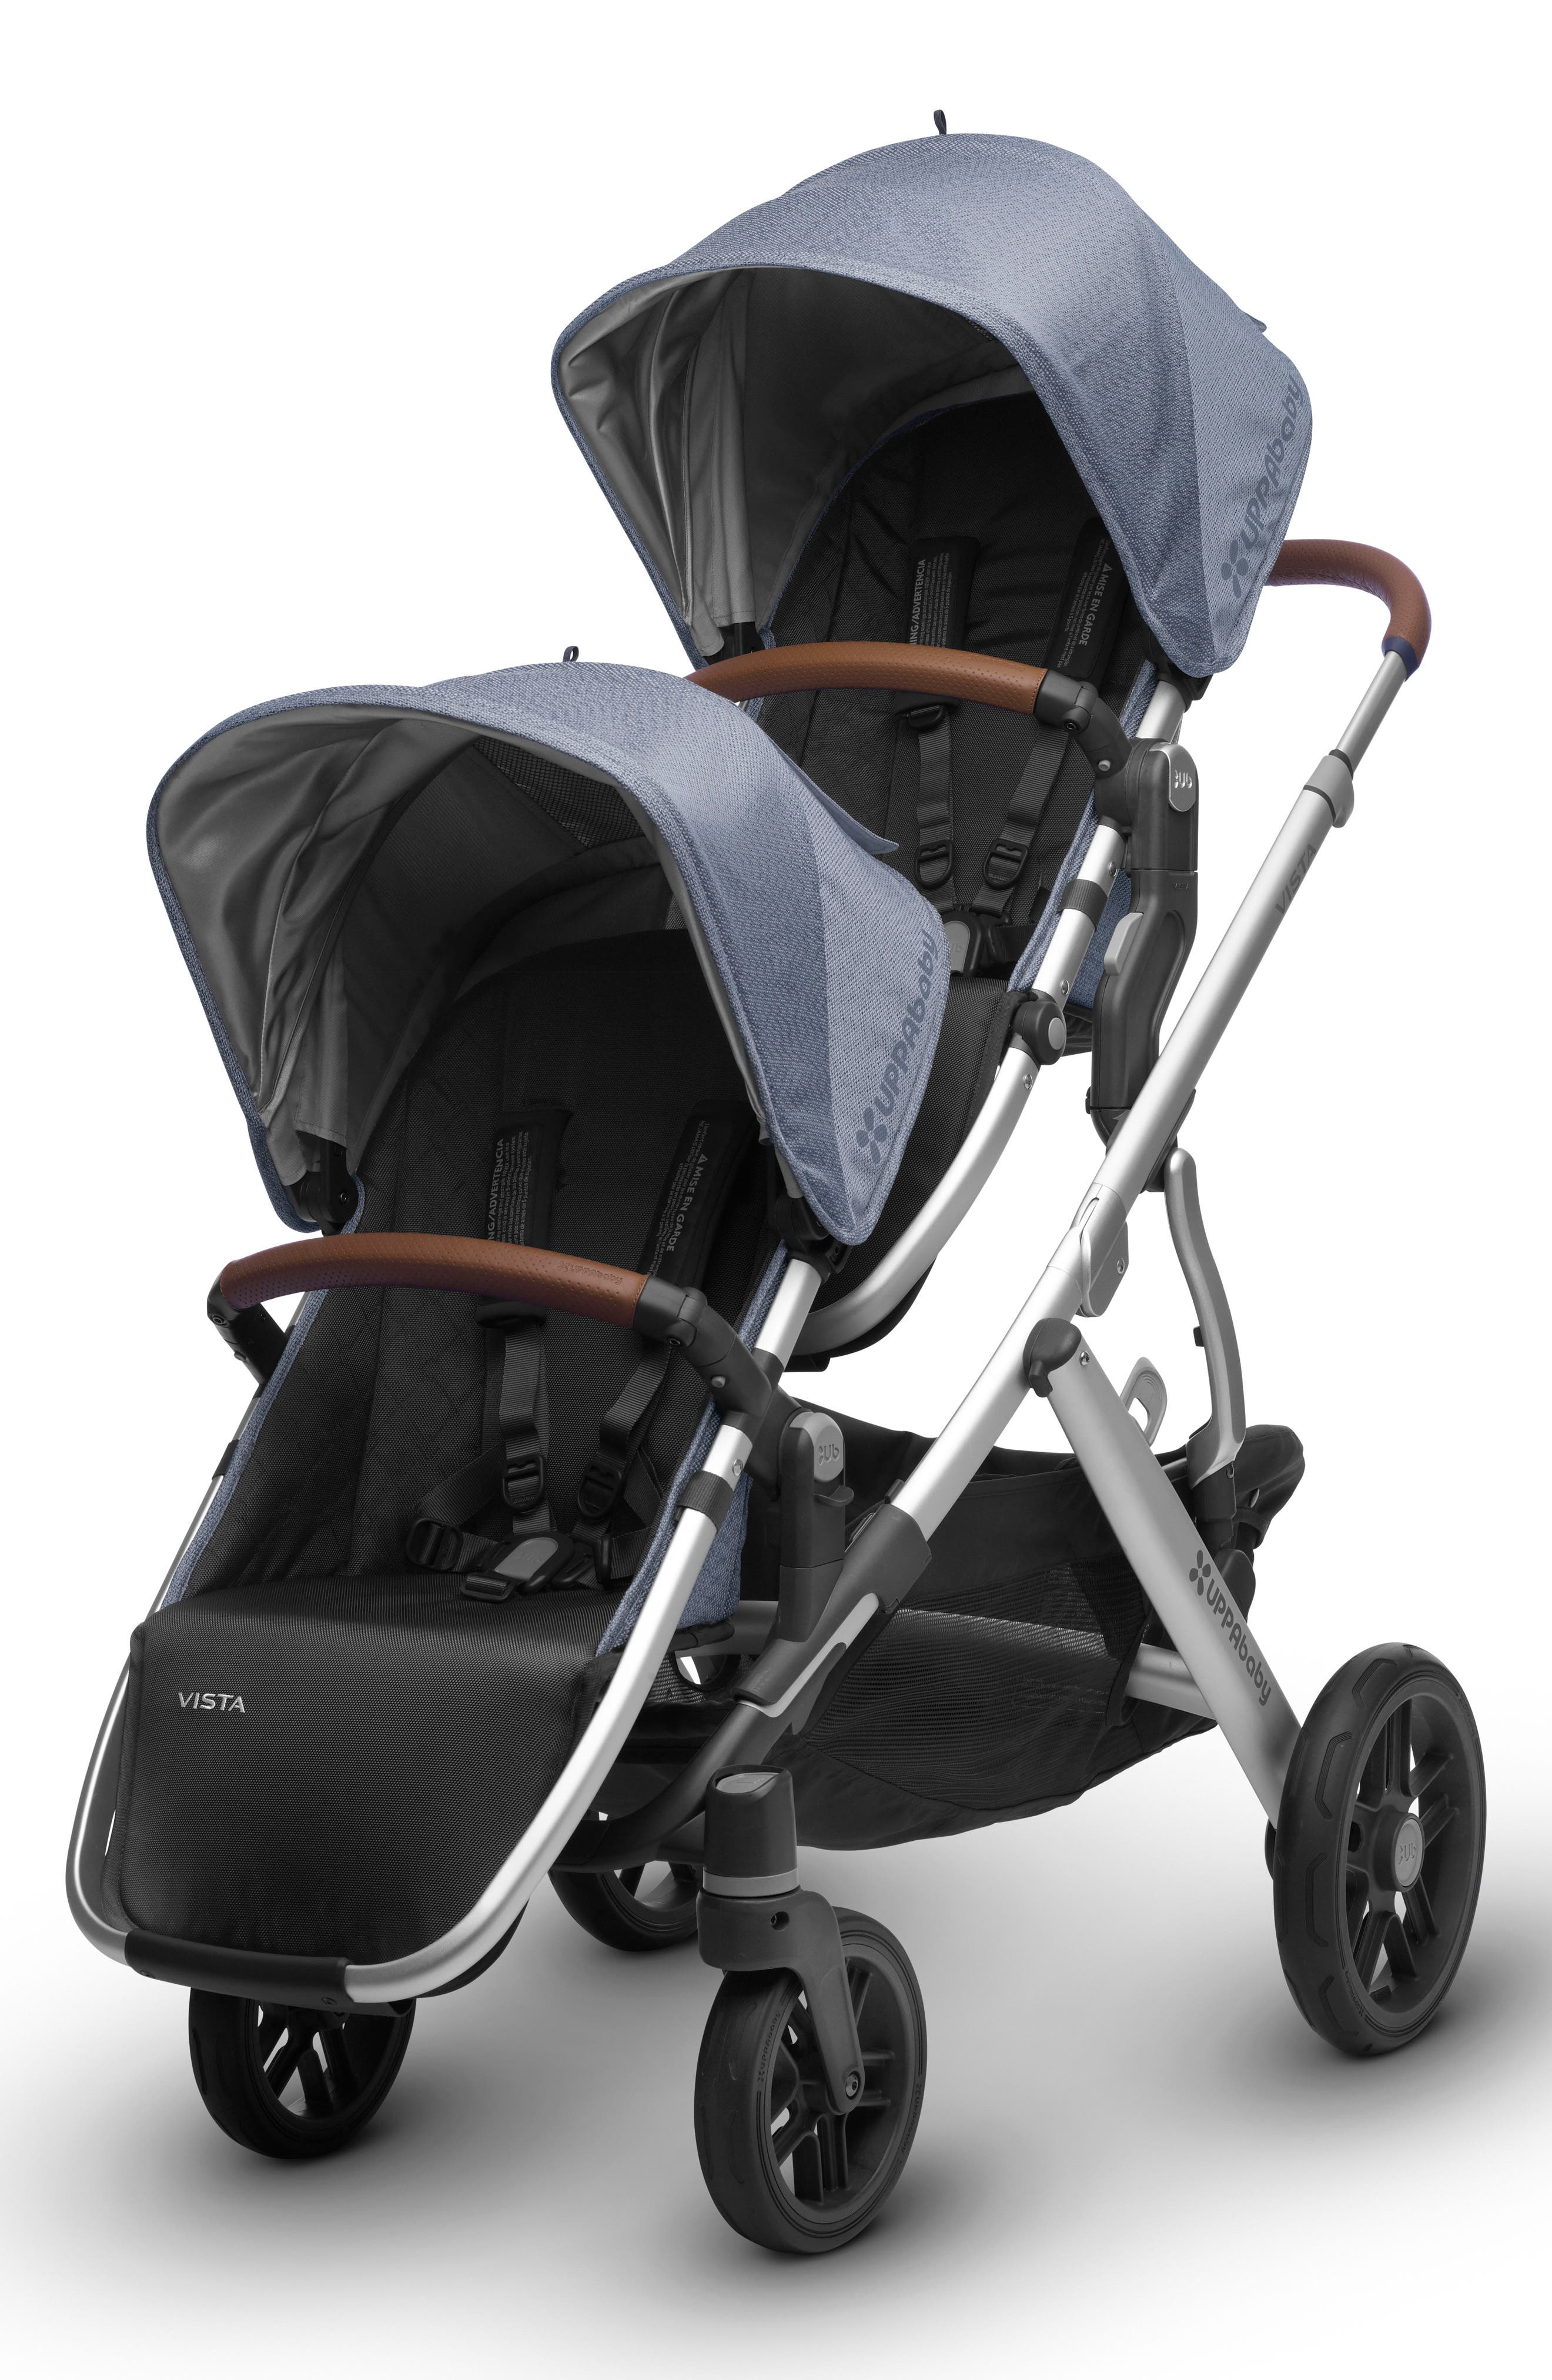 2017 Limited Edition Henry Rumble Seat for VISTA Stroller,                             Alternate thumbnail 2, color,                             Blue Marl